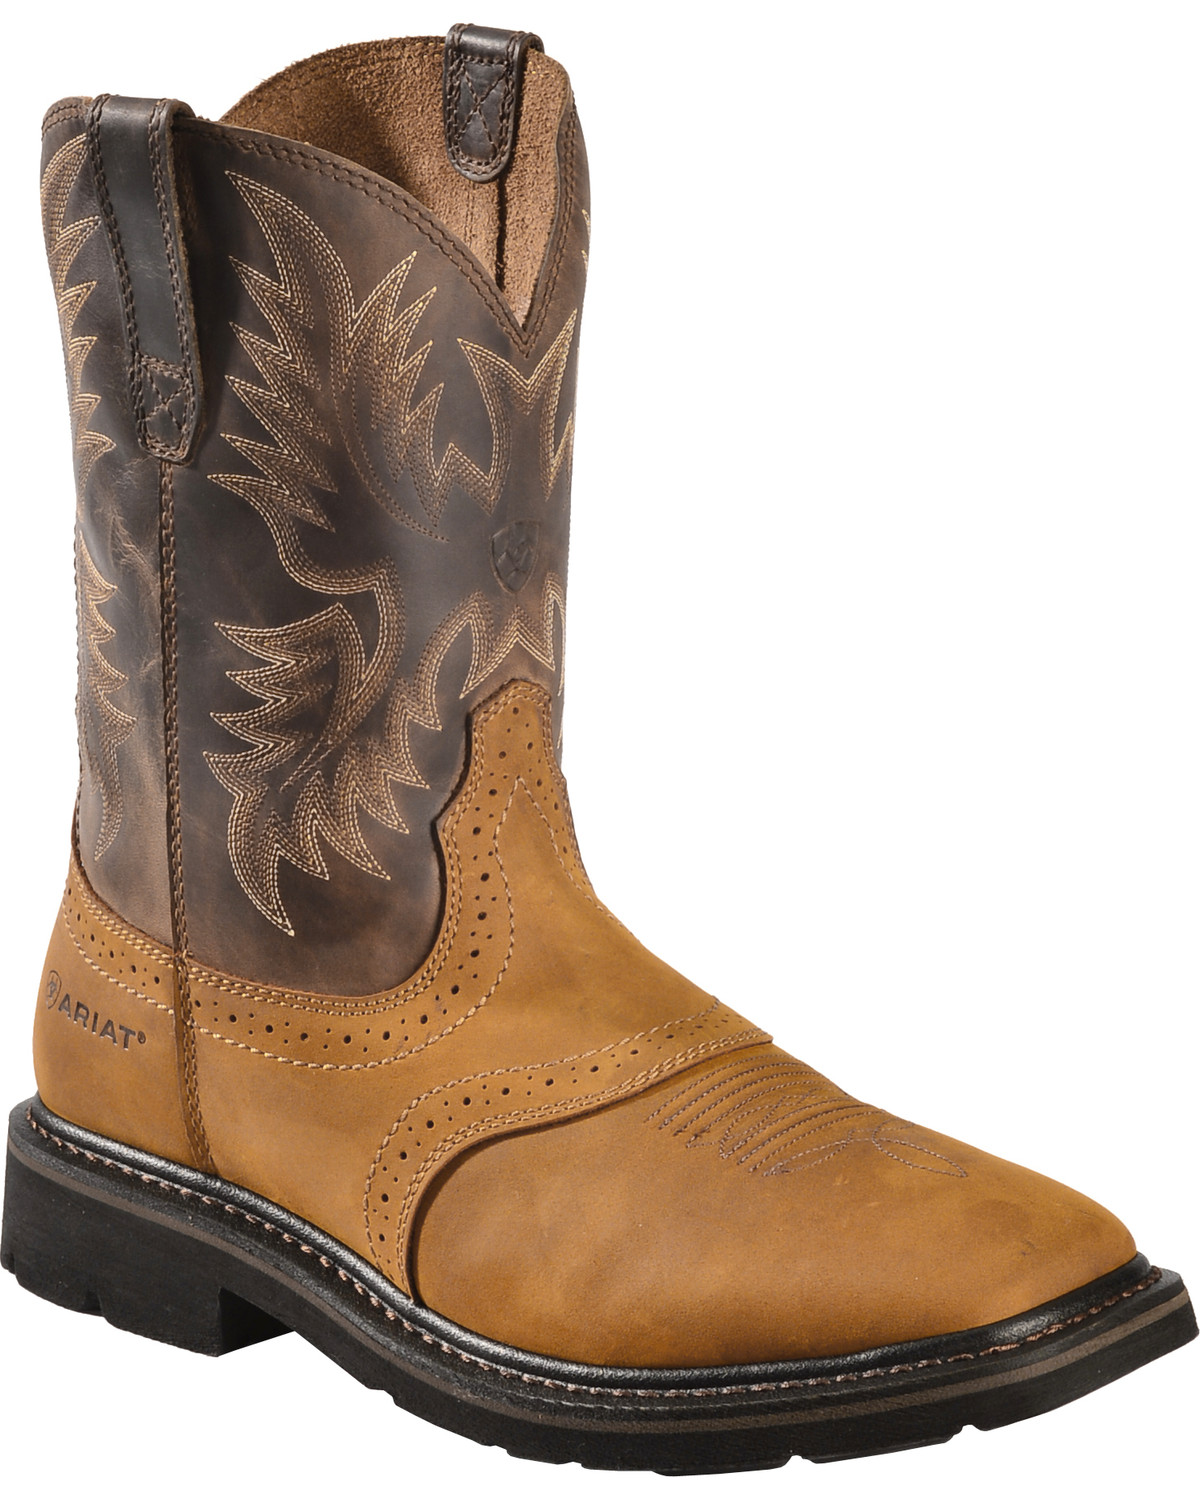 Ariat Sierra Pull-On Western Work Boots - Square Toe | Sheplers